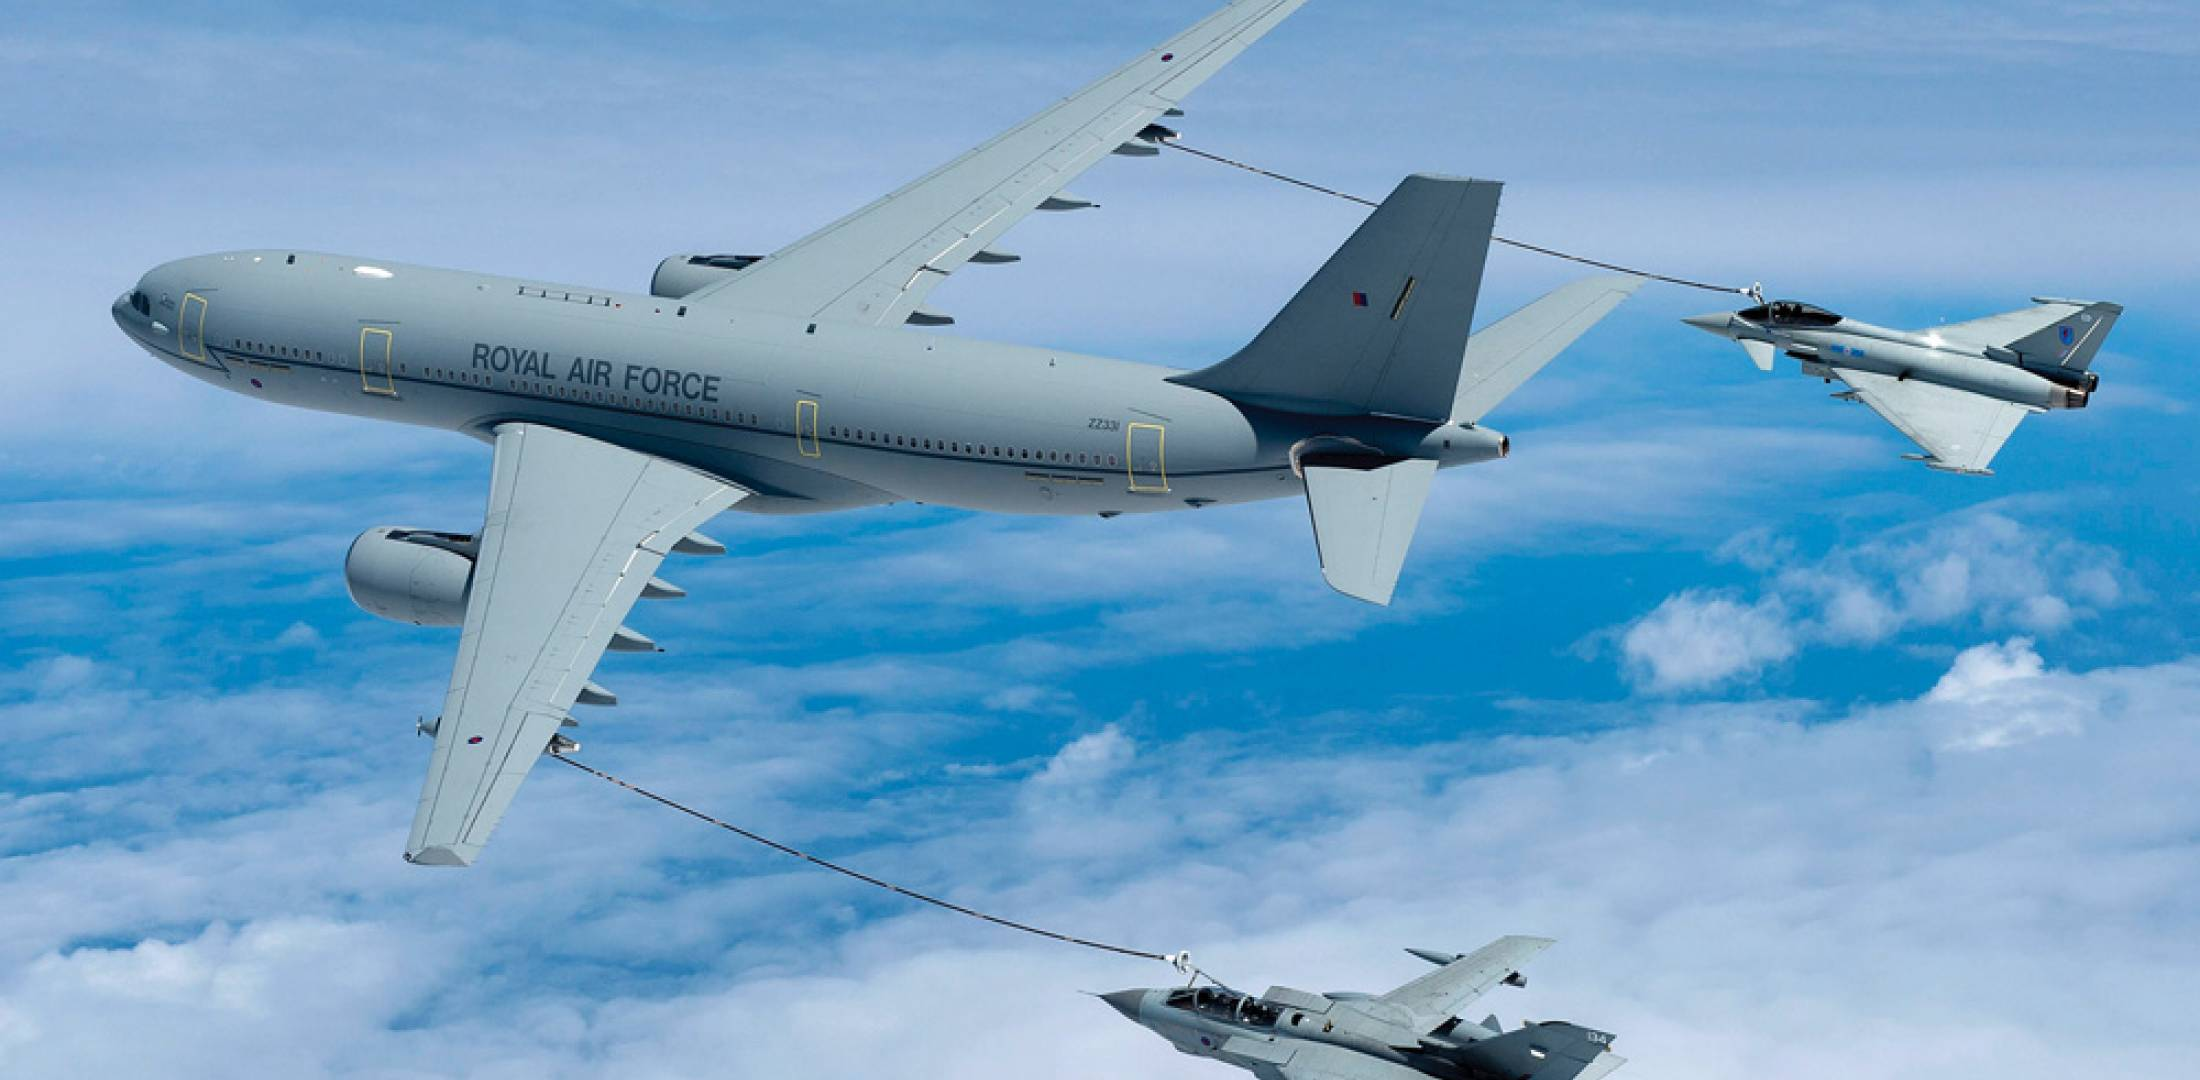 A Royal Air Force A330MRTT refuels the service's two frontline fighters–a Typhoon and a Tornado GR.4. The big Airbus tanker is known in RAF service as the Voyager. The aircraft are provided by AirTanker Ltd. as part of a unique Private Finance Initiative.